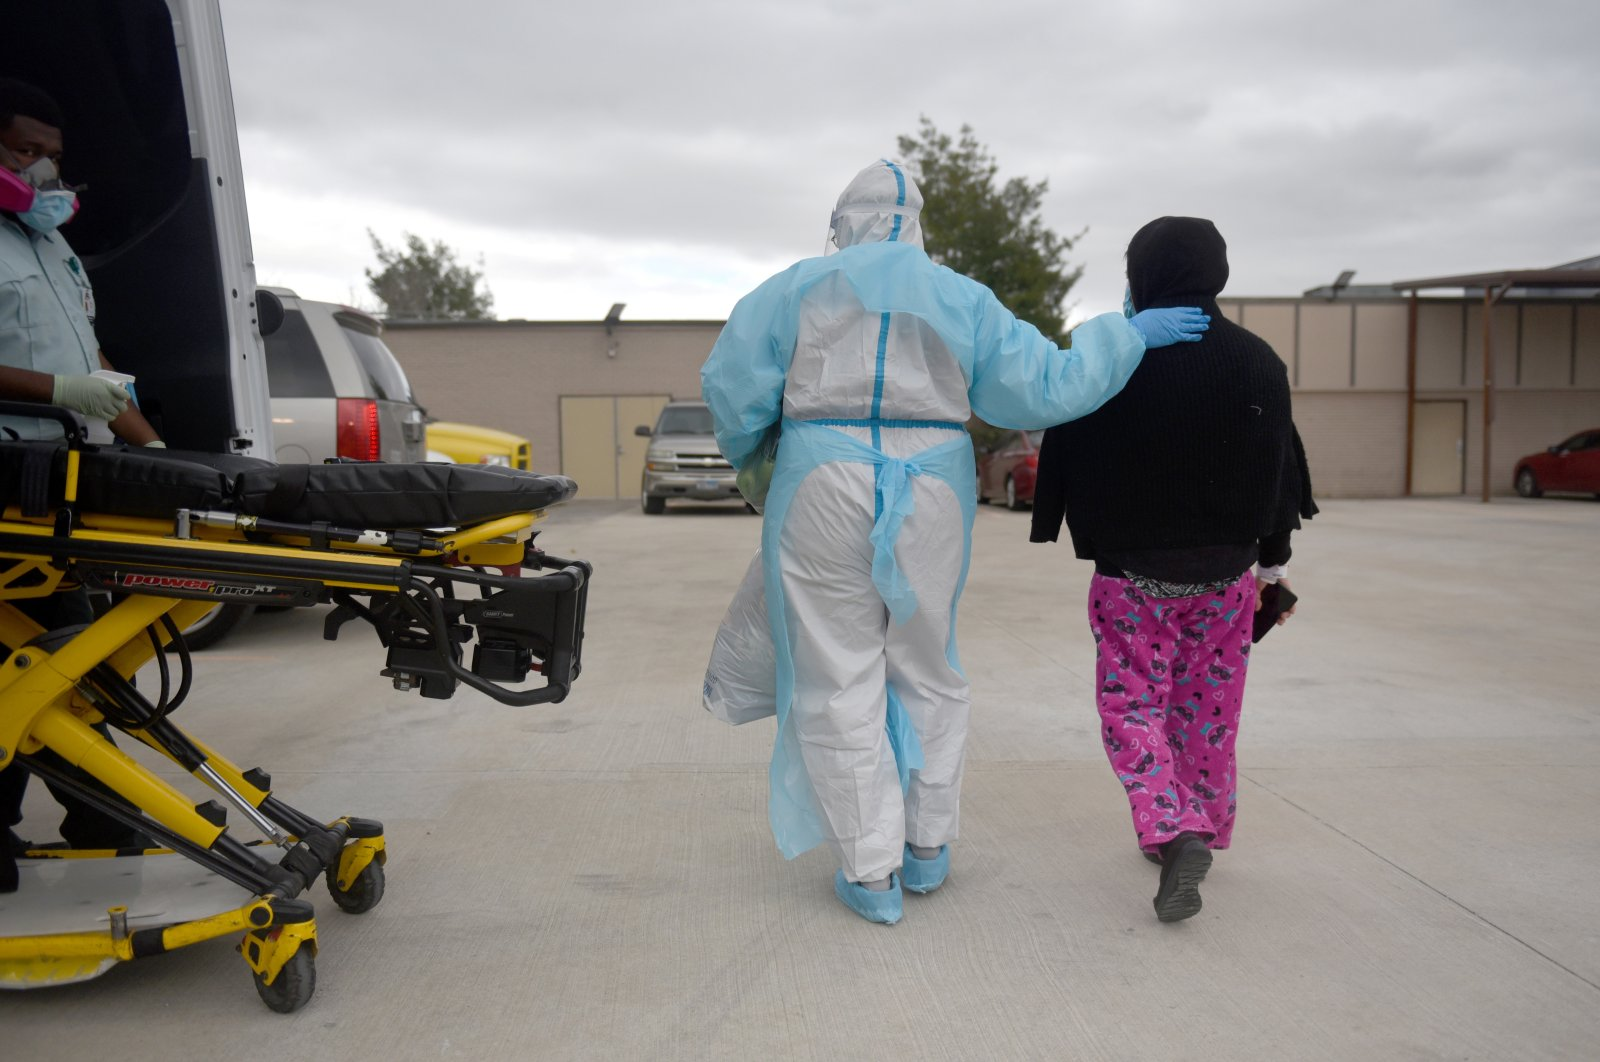 A health care worker walks with Juana Negrete, who is waiting to be picked up after being discharged from the COVID-19 unit at United Memorial Medical Center in Houston, Texas, U.S., Dec. 29, 2020. (Reuters Photo)